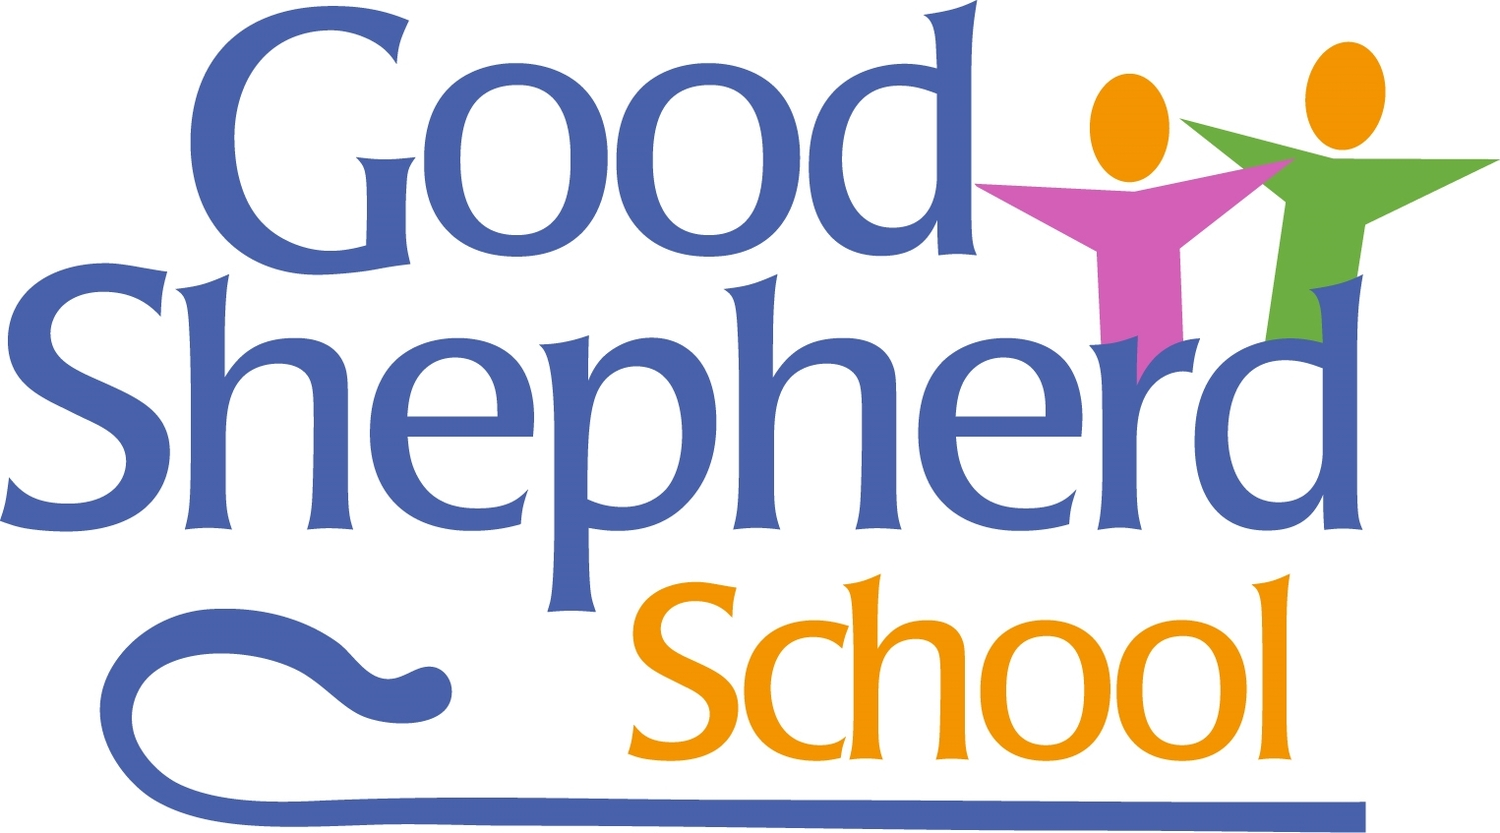 Good Shepherd School